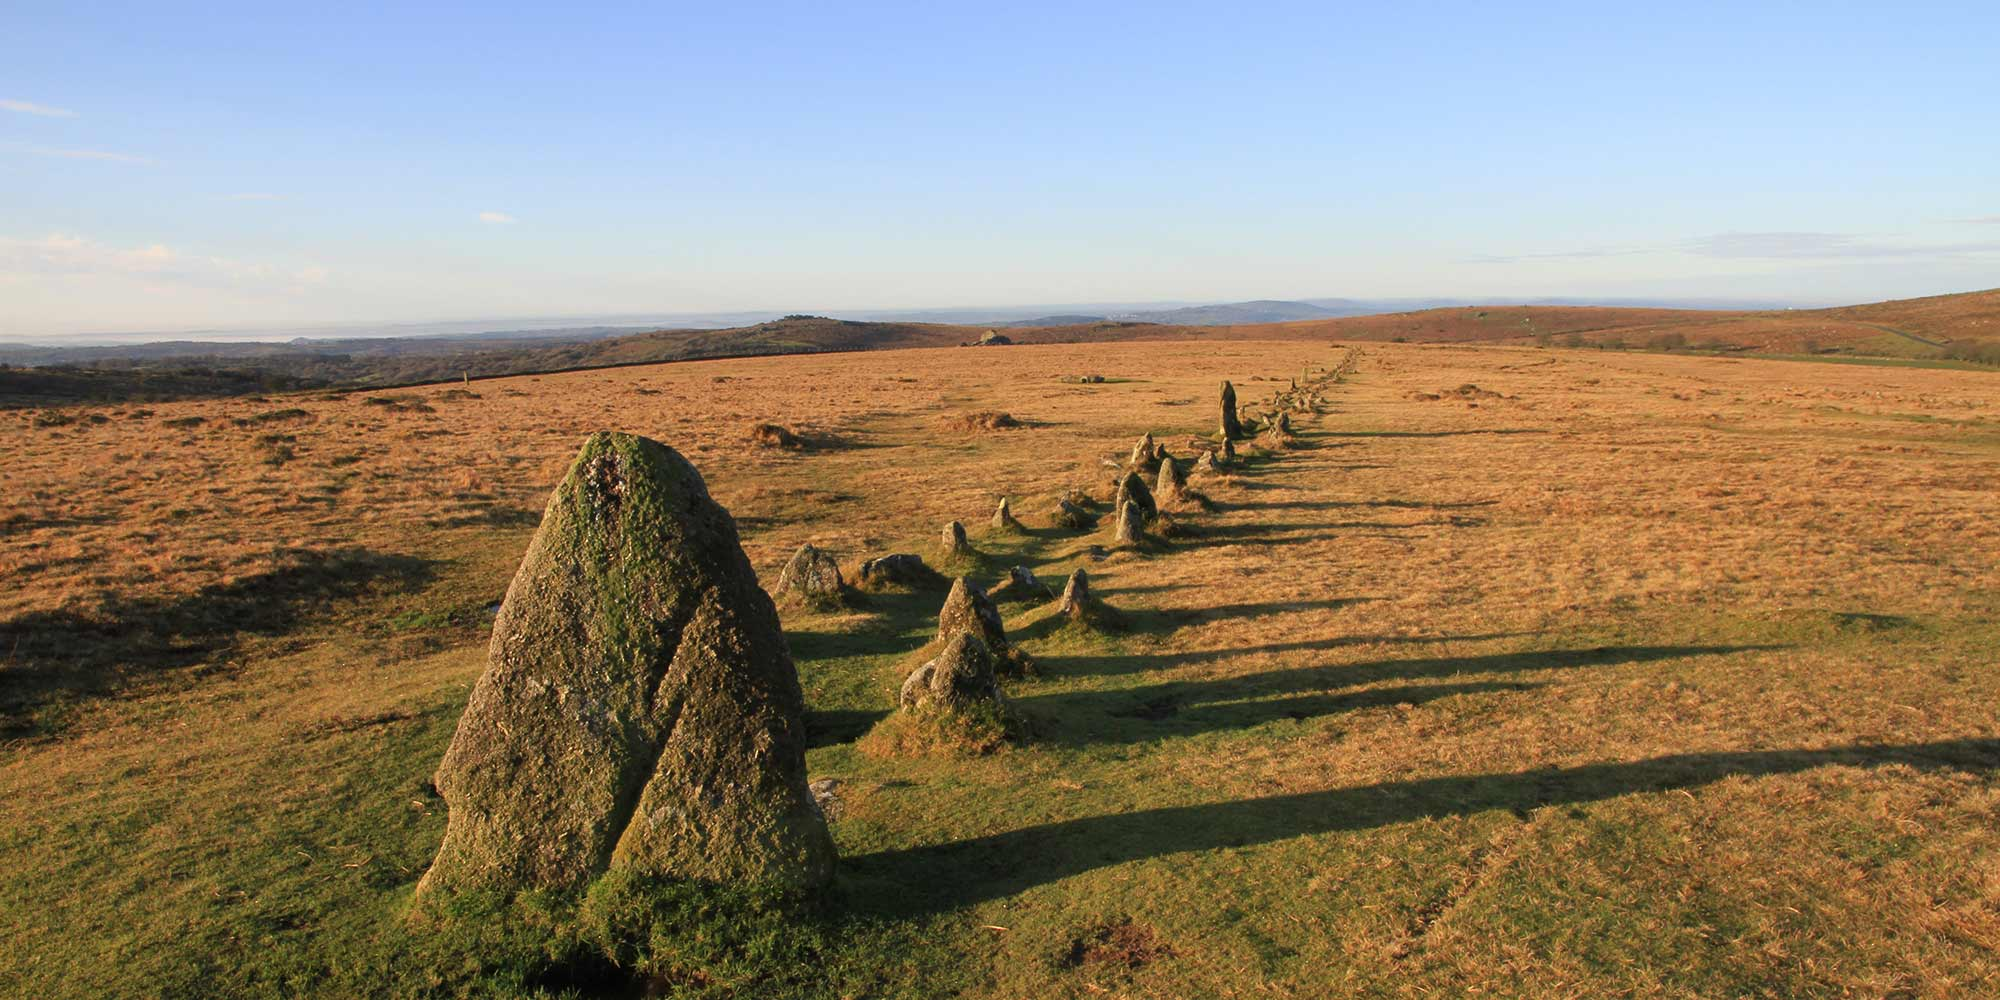 A long row of pre-historic standing stones on grassy moorland